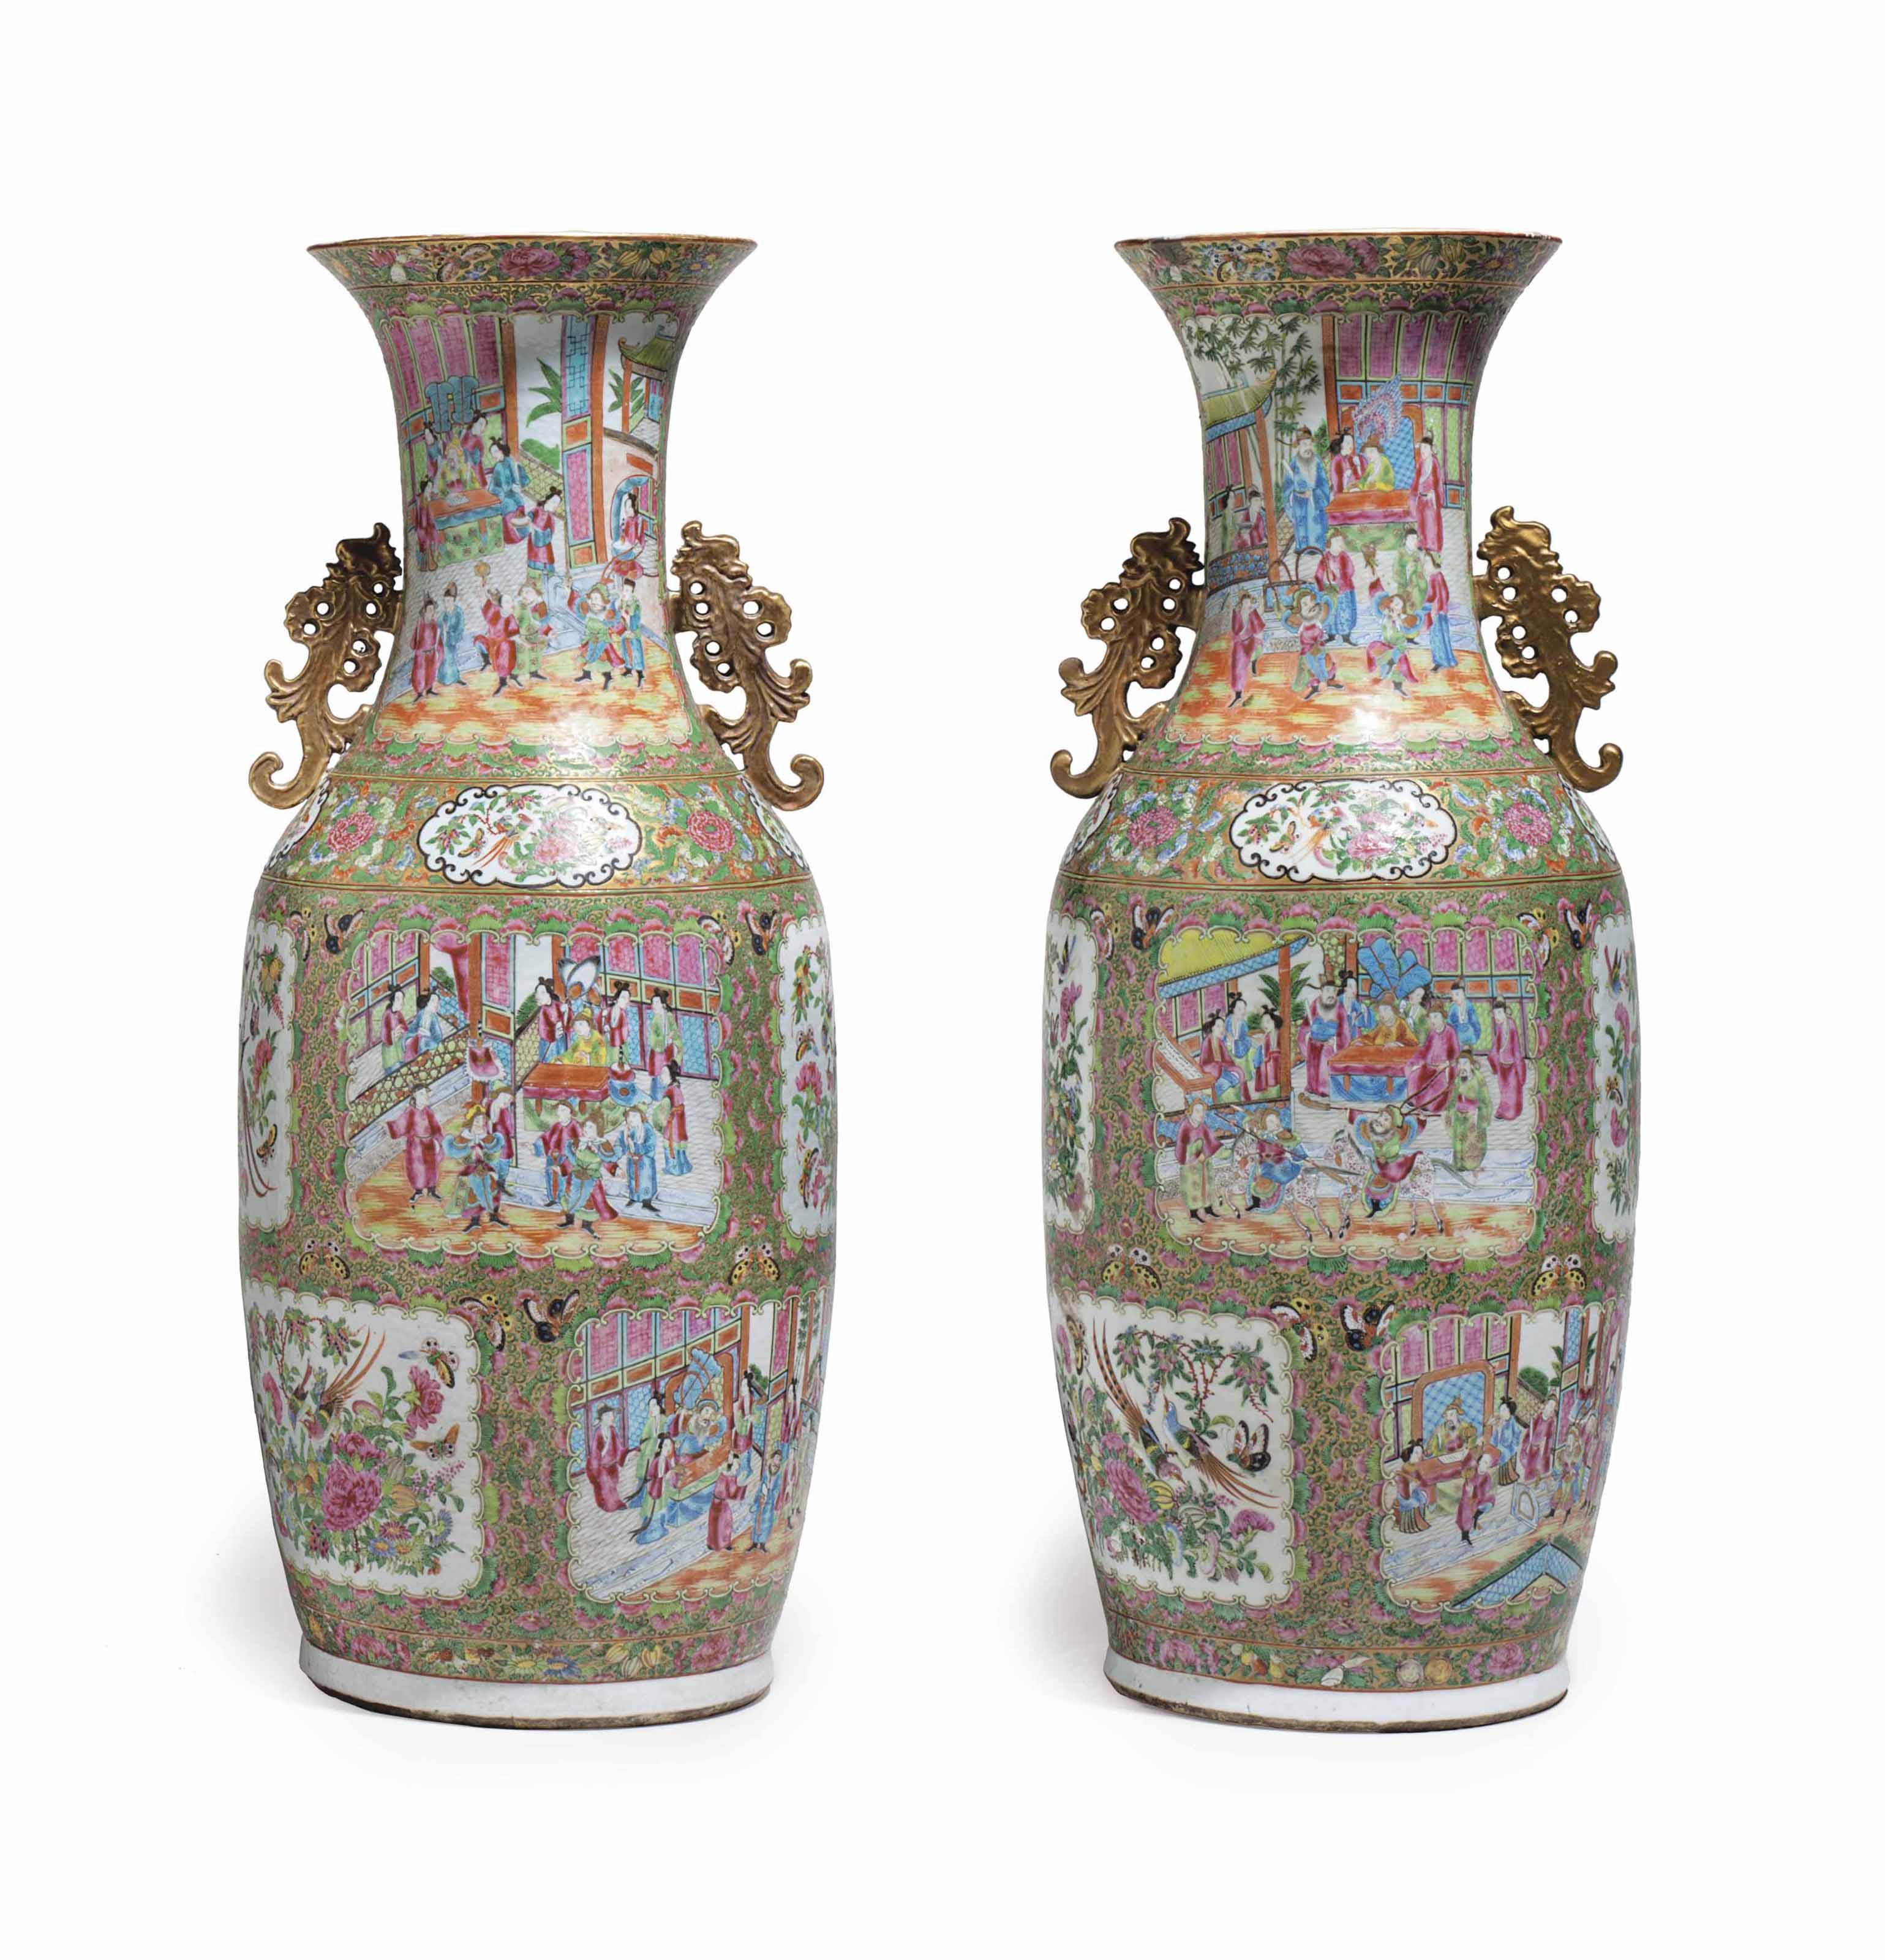 A VERY LARGE PAIR OF CHINESE EXPORT 'CANTON FAMILLE ROSE' VASES